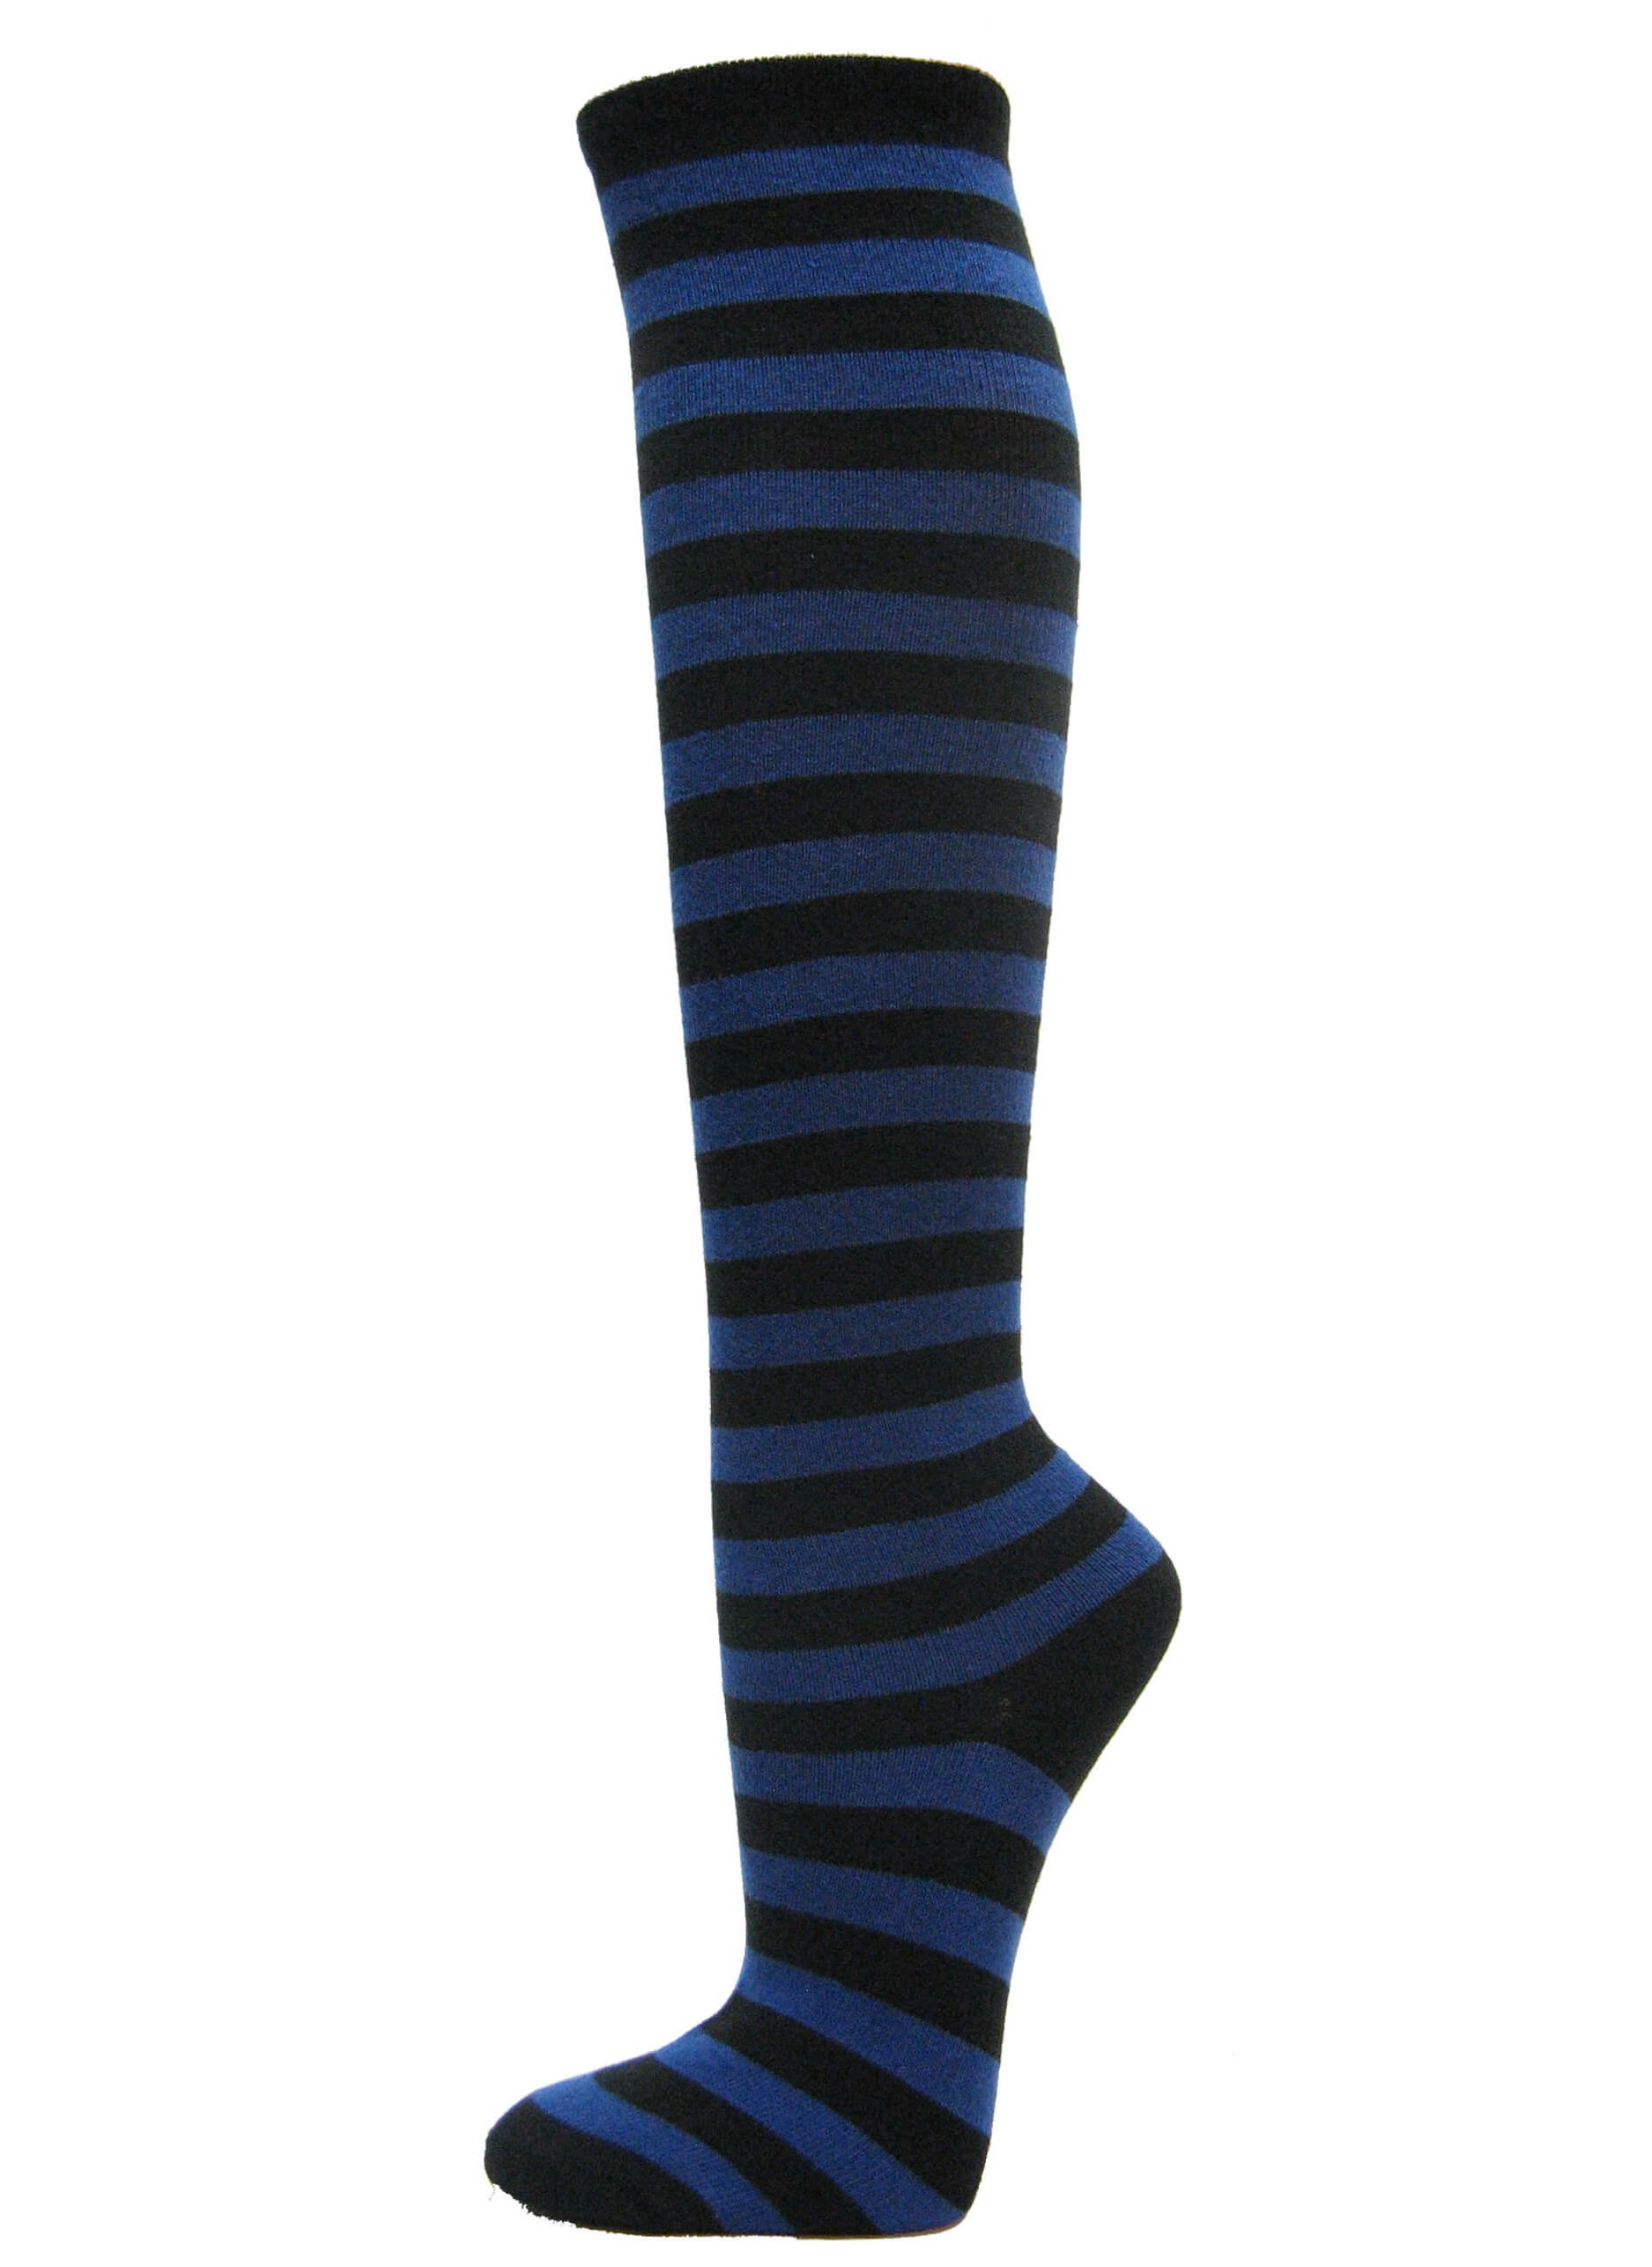 Couver Halloween costume 2 Colored Striped Women's Fashion Colorful Knee High Tube Socks - Black / Bright Green